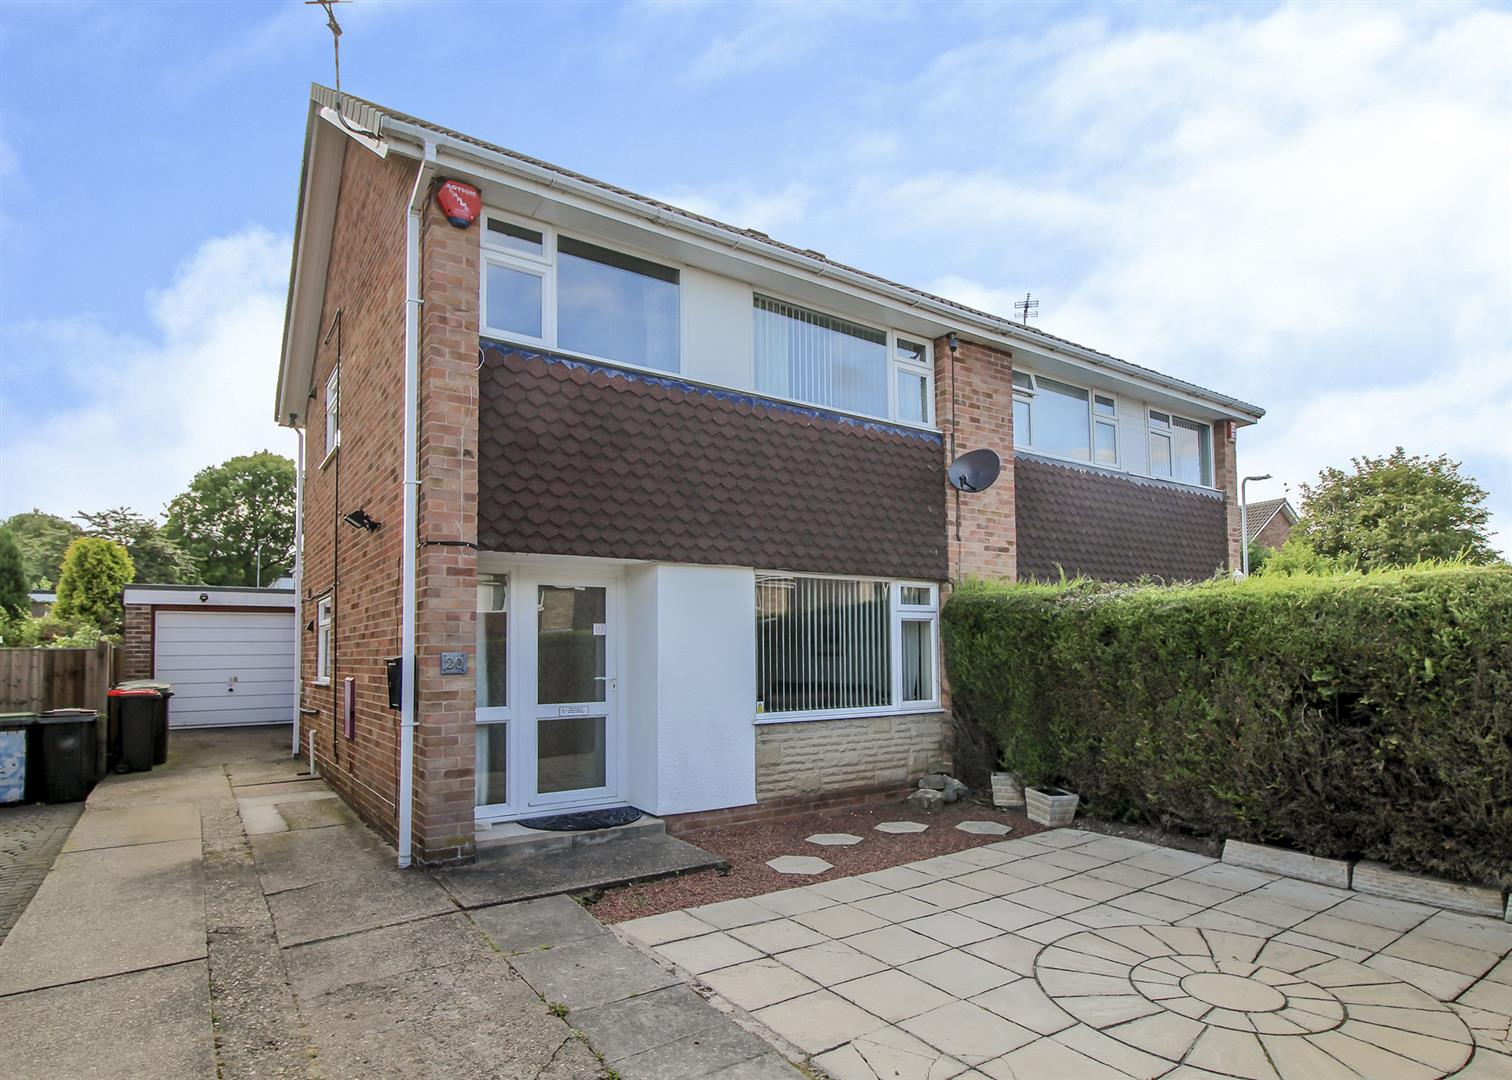 3 Bedrooms Semi Detached House for sale in Northdown Drive, Chilwell